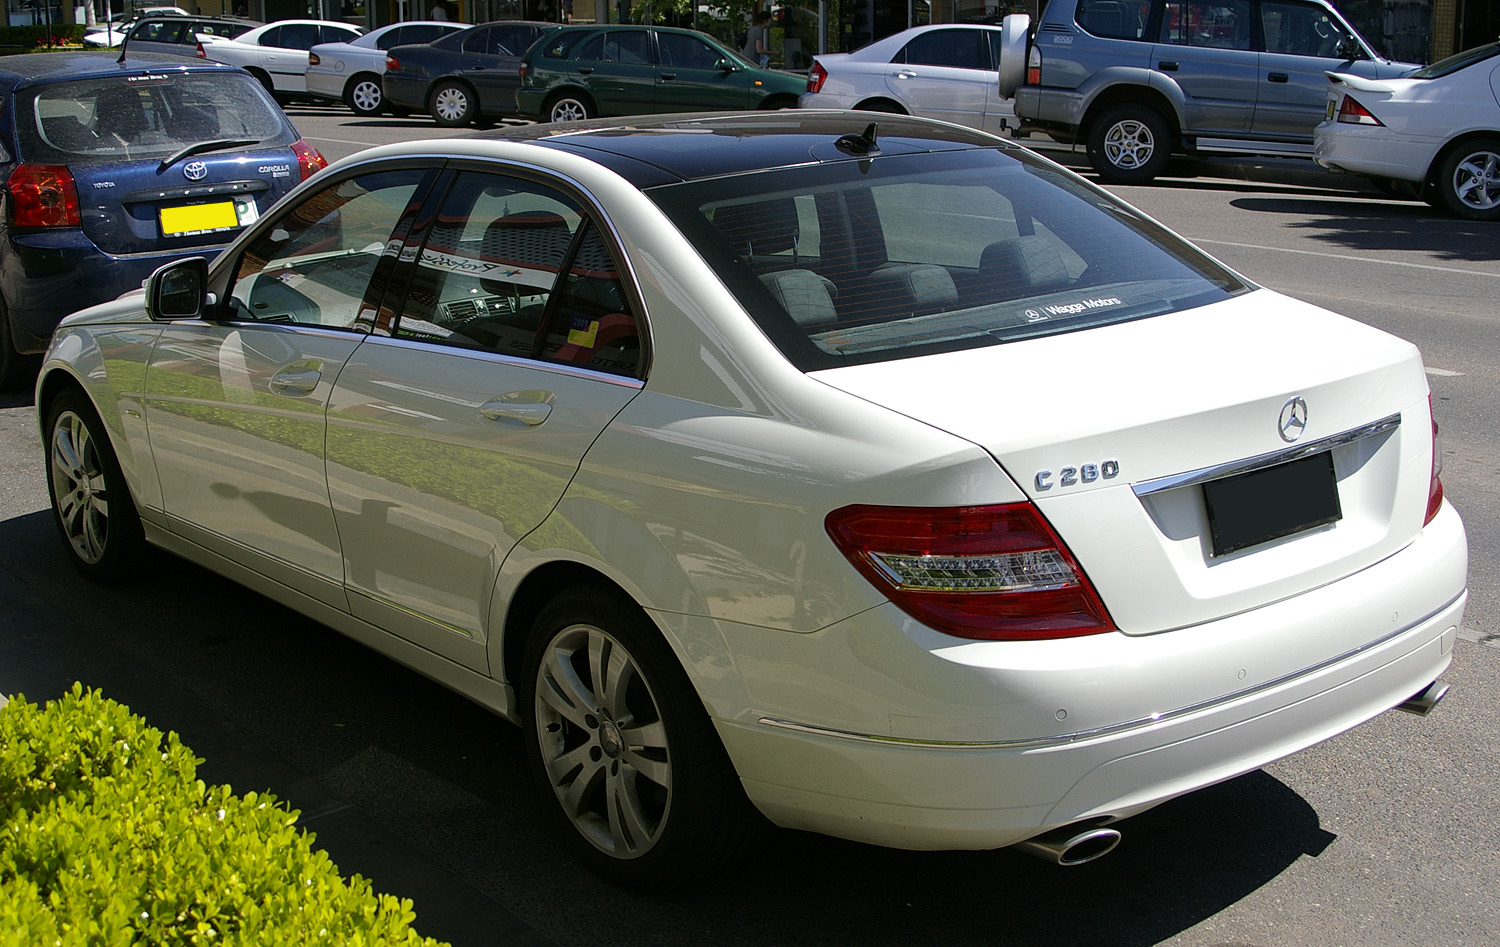 Mercedes-benz c280 photo - 1